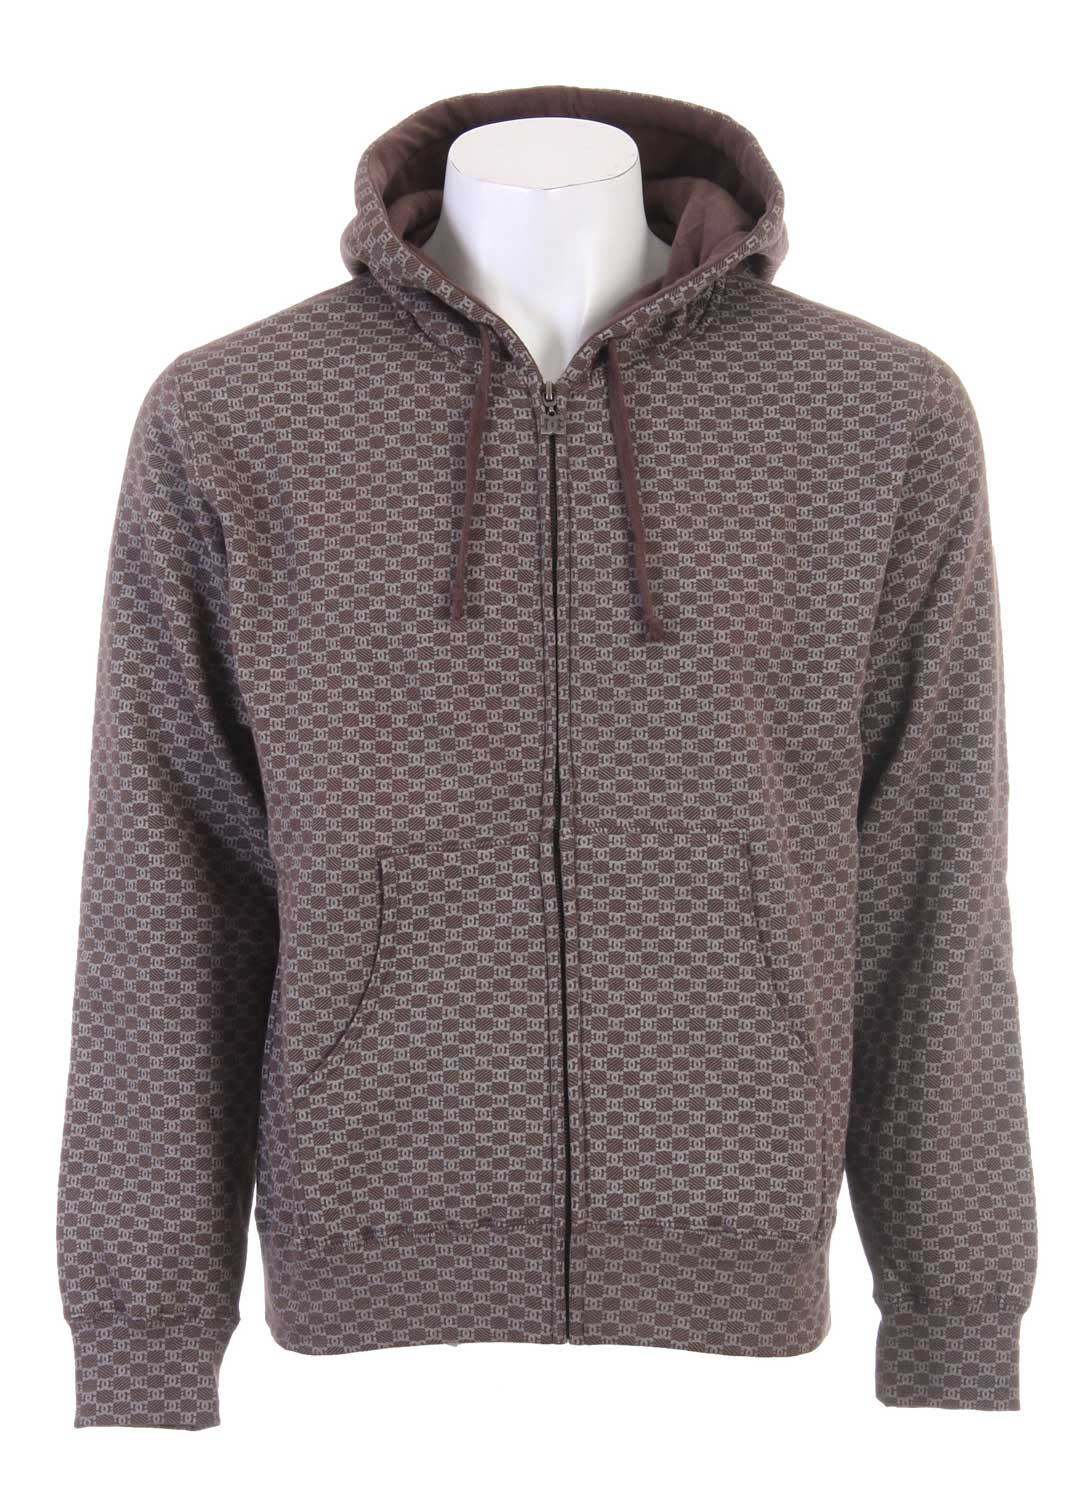 Skateboard If you've been looking for a new sweatshirt to buy then the new DC Monogramic Full Zip Hoodie would be a great choice. It is a men's sweatshirt and is made out of both polyester and cotton so that it will be super comfortable. This sweatshirt is perfect for wearing while skating or while out and about around town. This sweatshirt does have a fast sellout rate though so don't miss your opportunity to buy it today. It is a wonderful buy.80% Cotton / 20% Poly Knit Zips Sweatshirt - $21.95